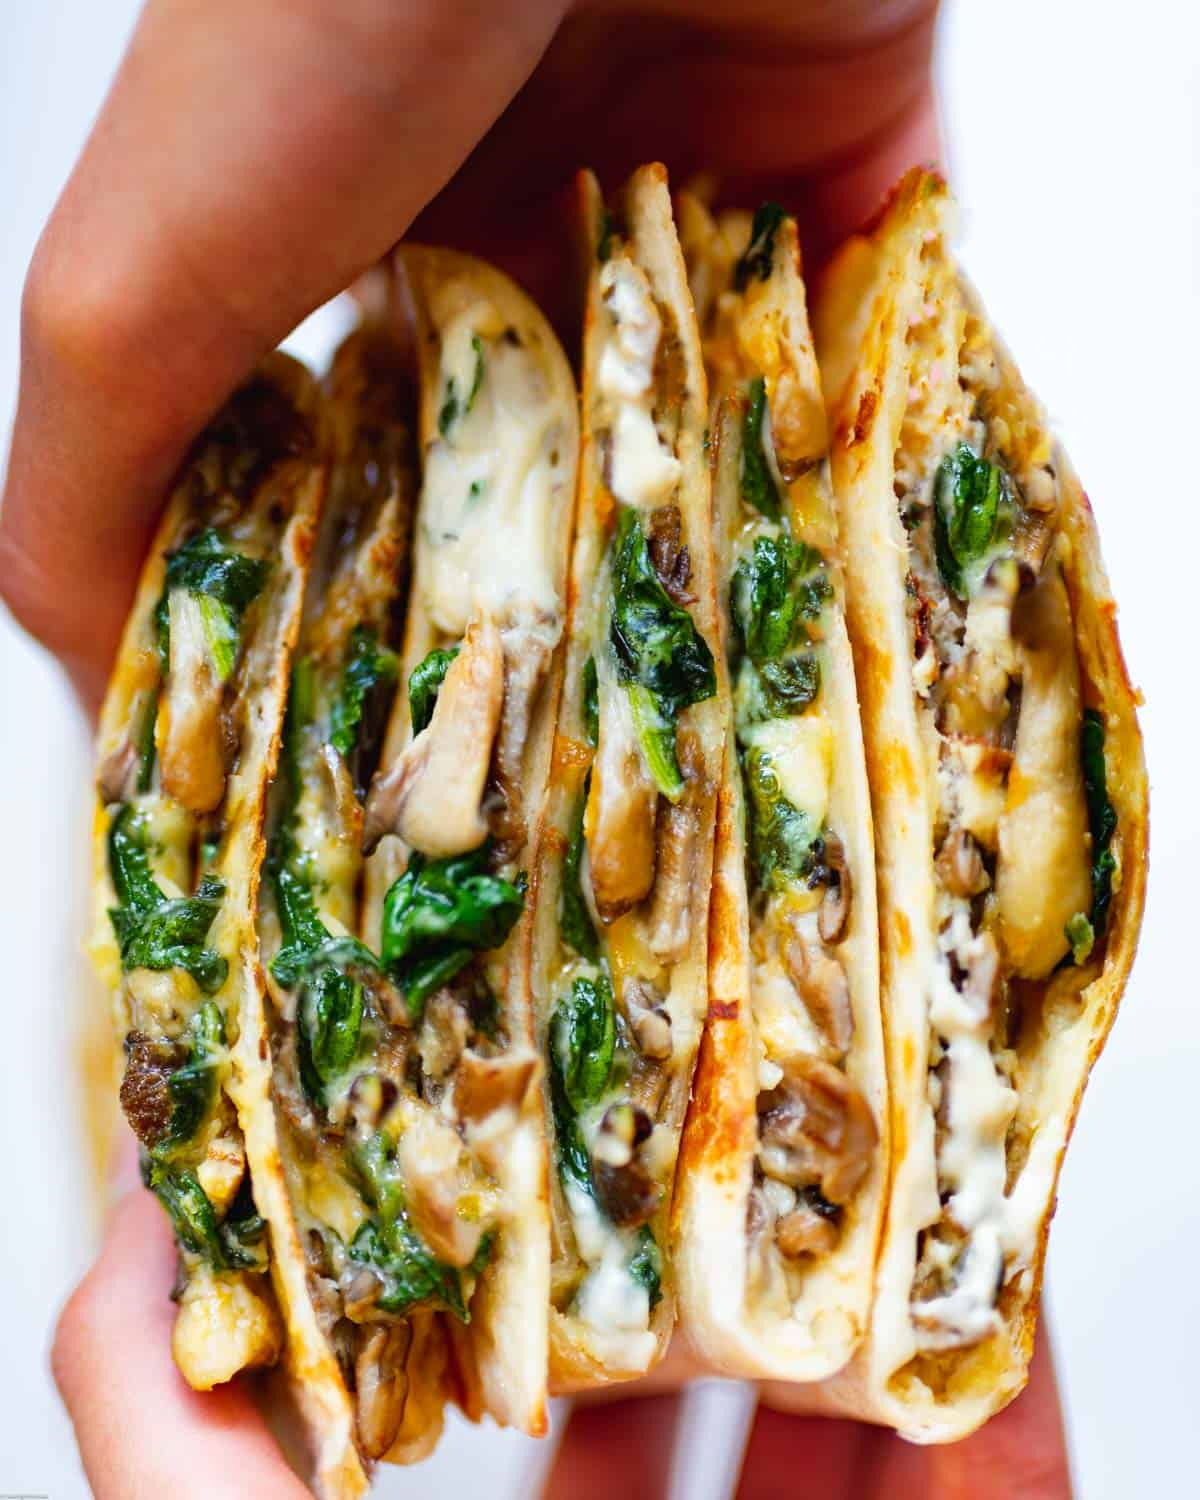 Easy Cheesy Vegan Quesadillas filled with cashew cheese, mushrooms and spinach.